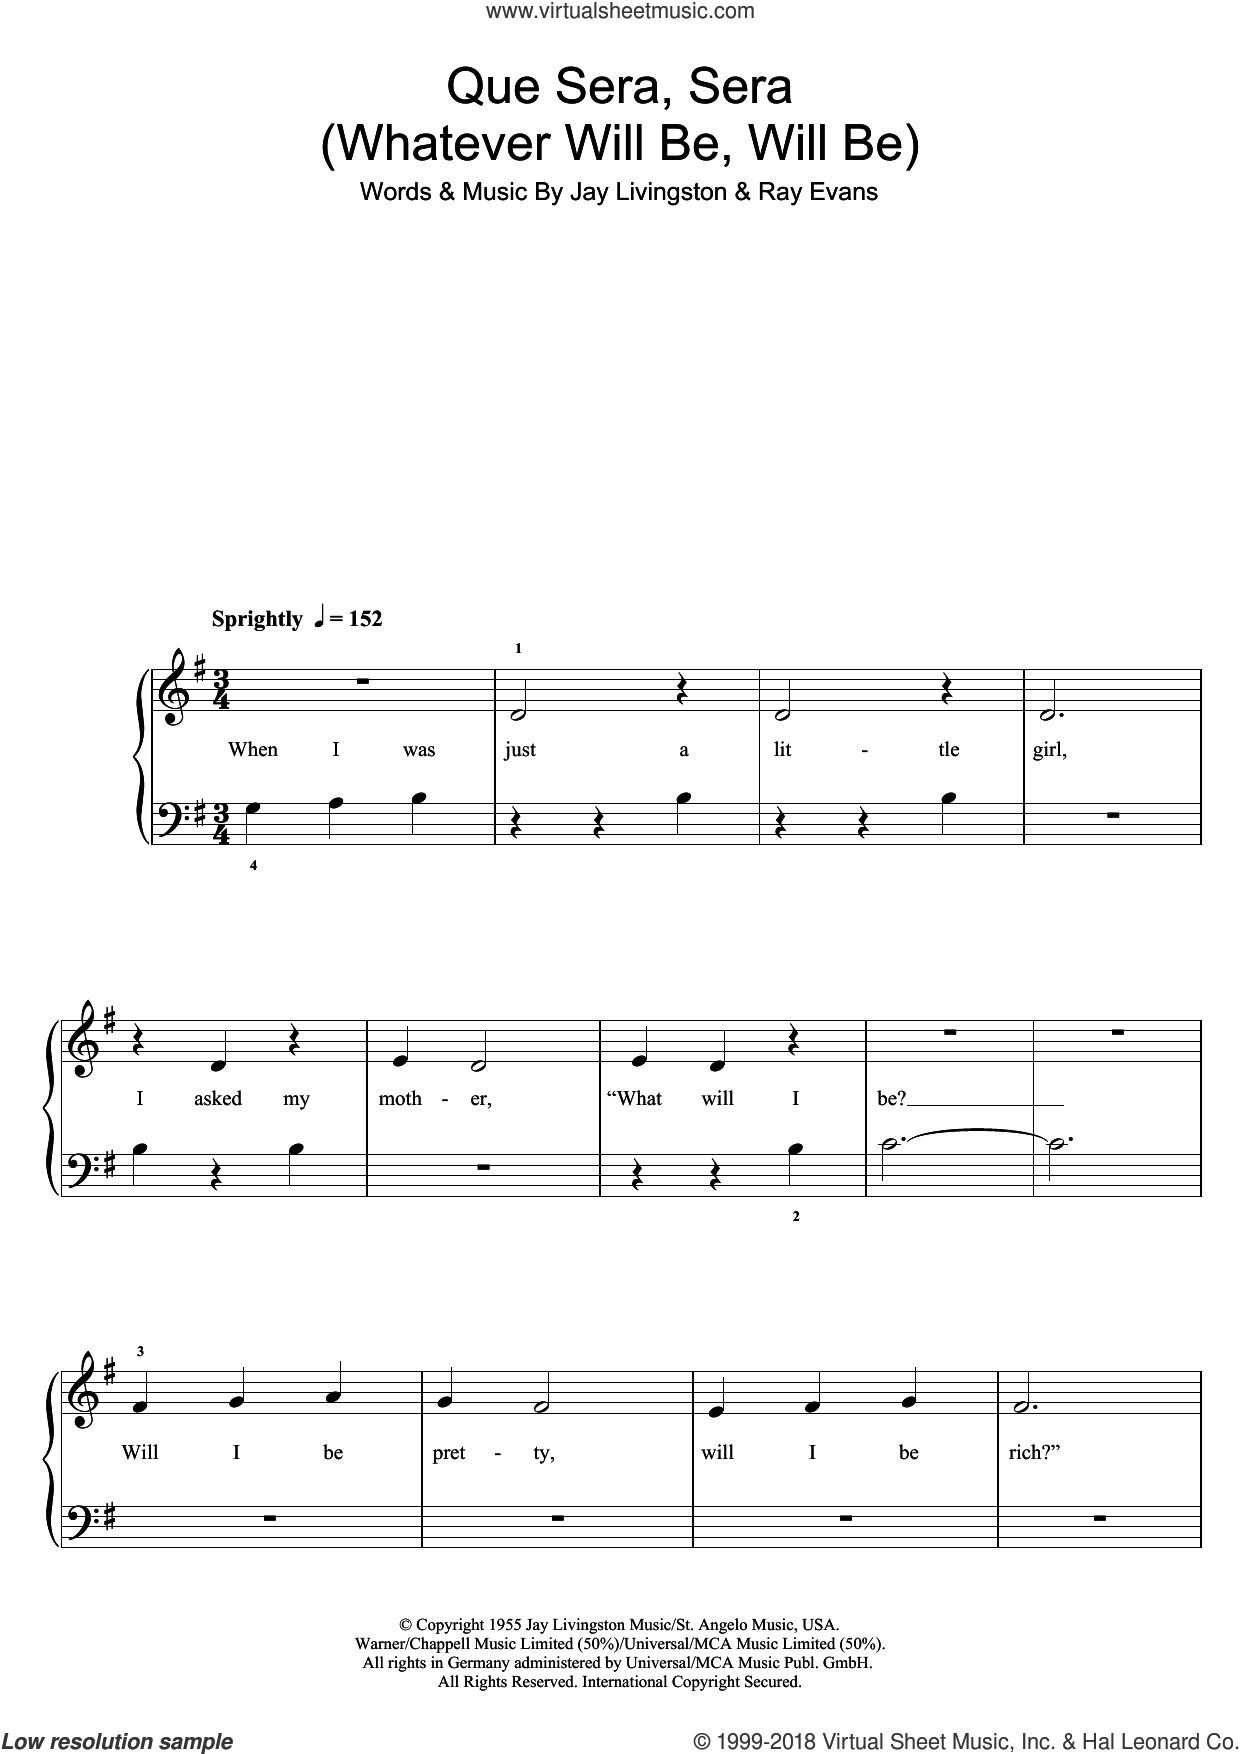 Whatever Will Be, Will Be (Que Sera Sera) sheet music for piano solo (chords) by Ray Evans